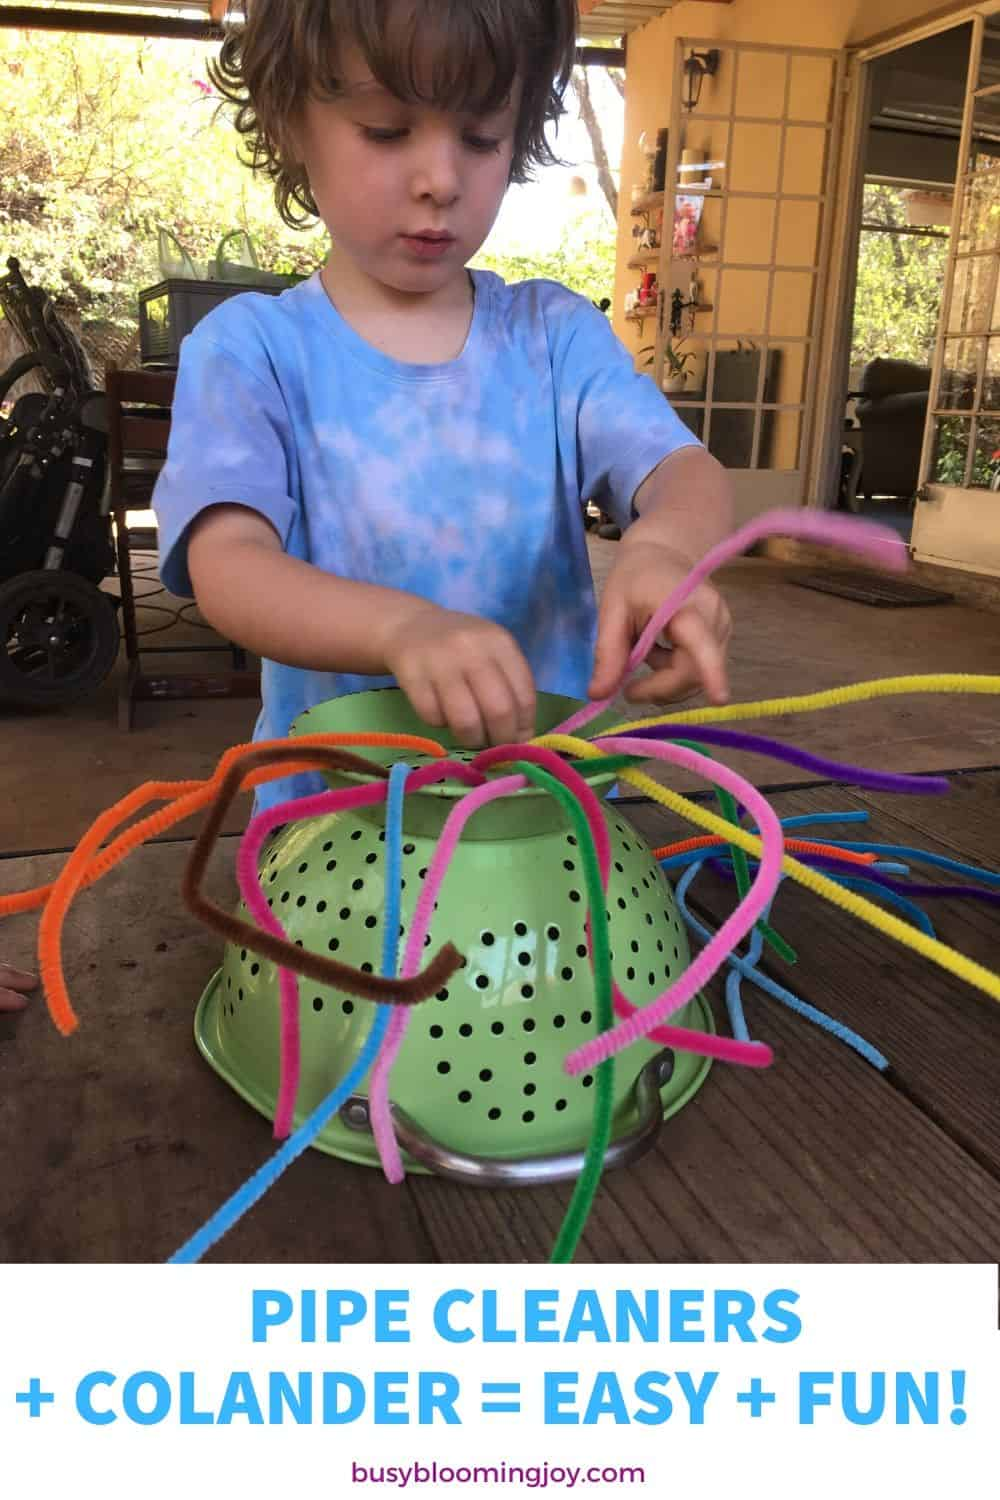 No prep easy toddler activity at home - pipe cleaners + colander